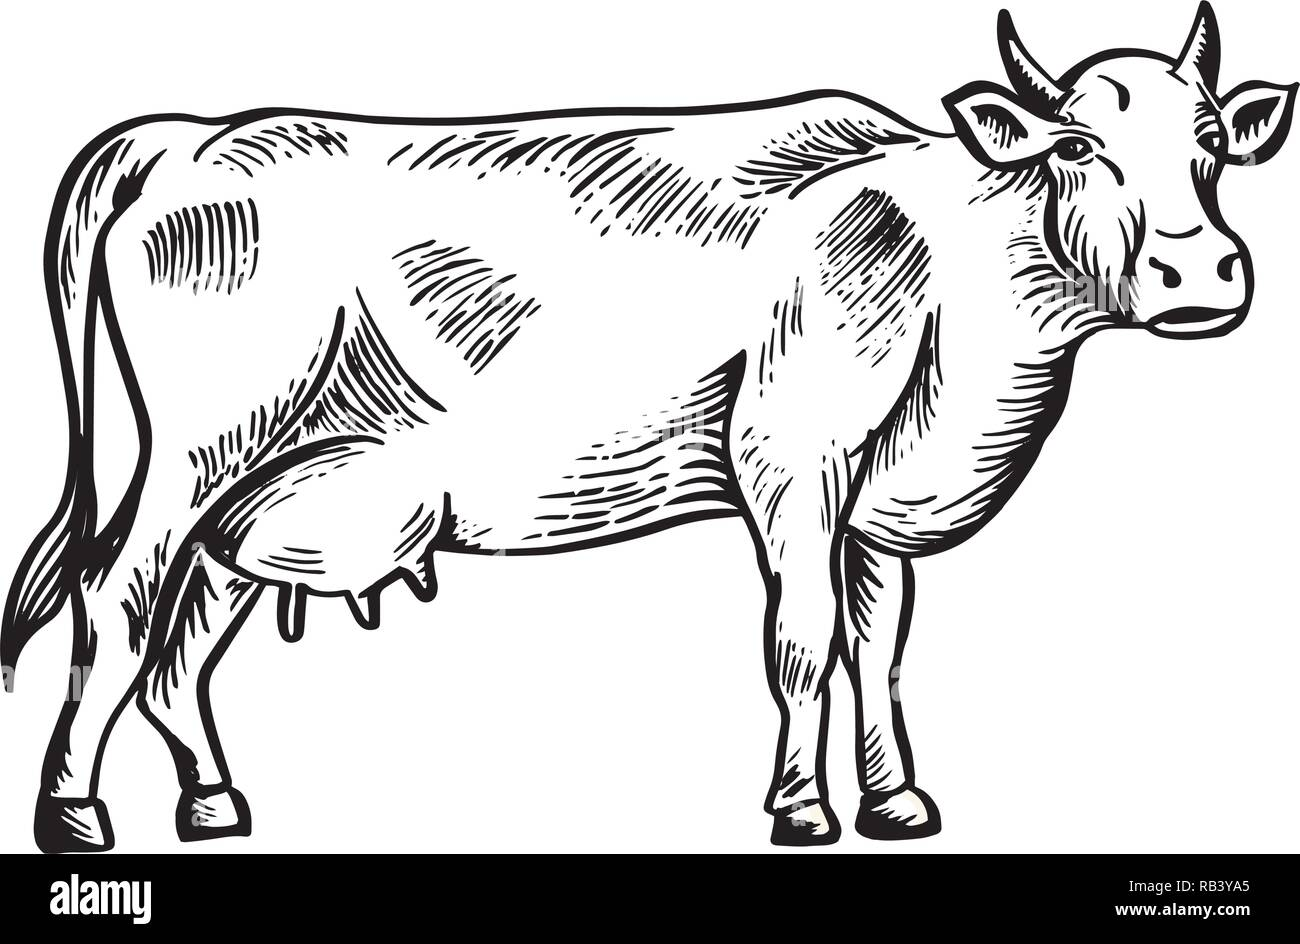 Cow Face Stock Vector Images - Page 2 - Alamy